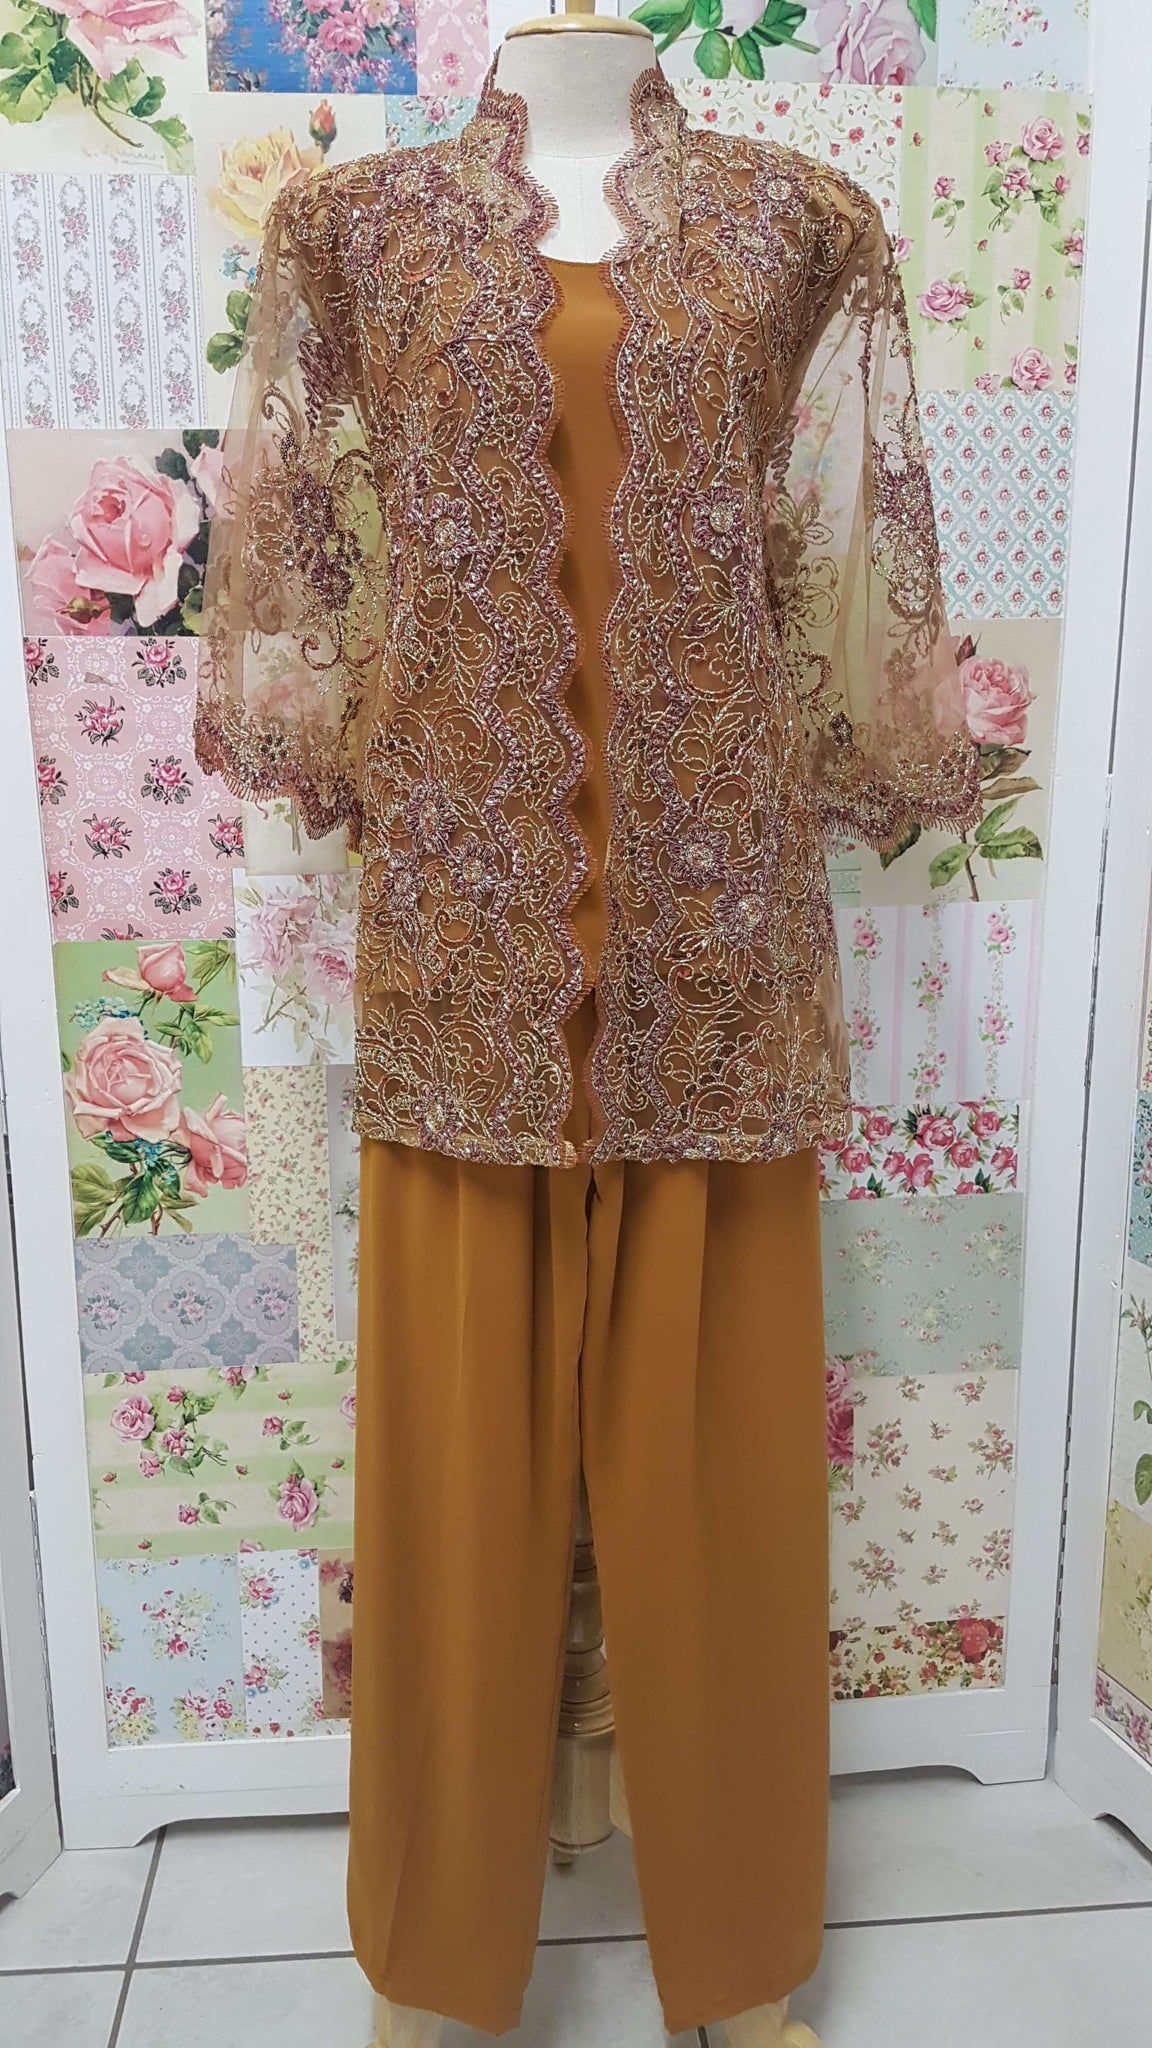 Dark Caramel Lace 3-Piece BT012